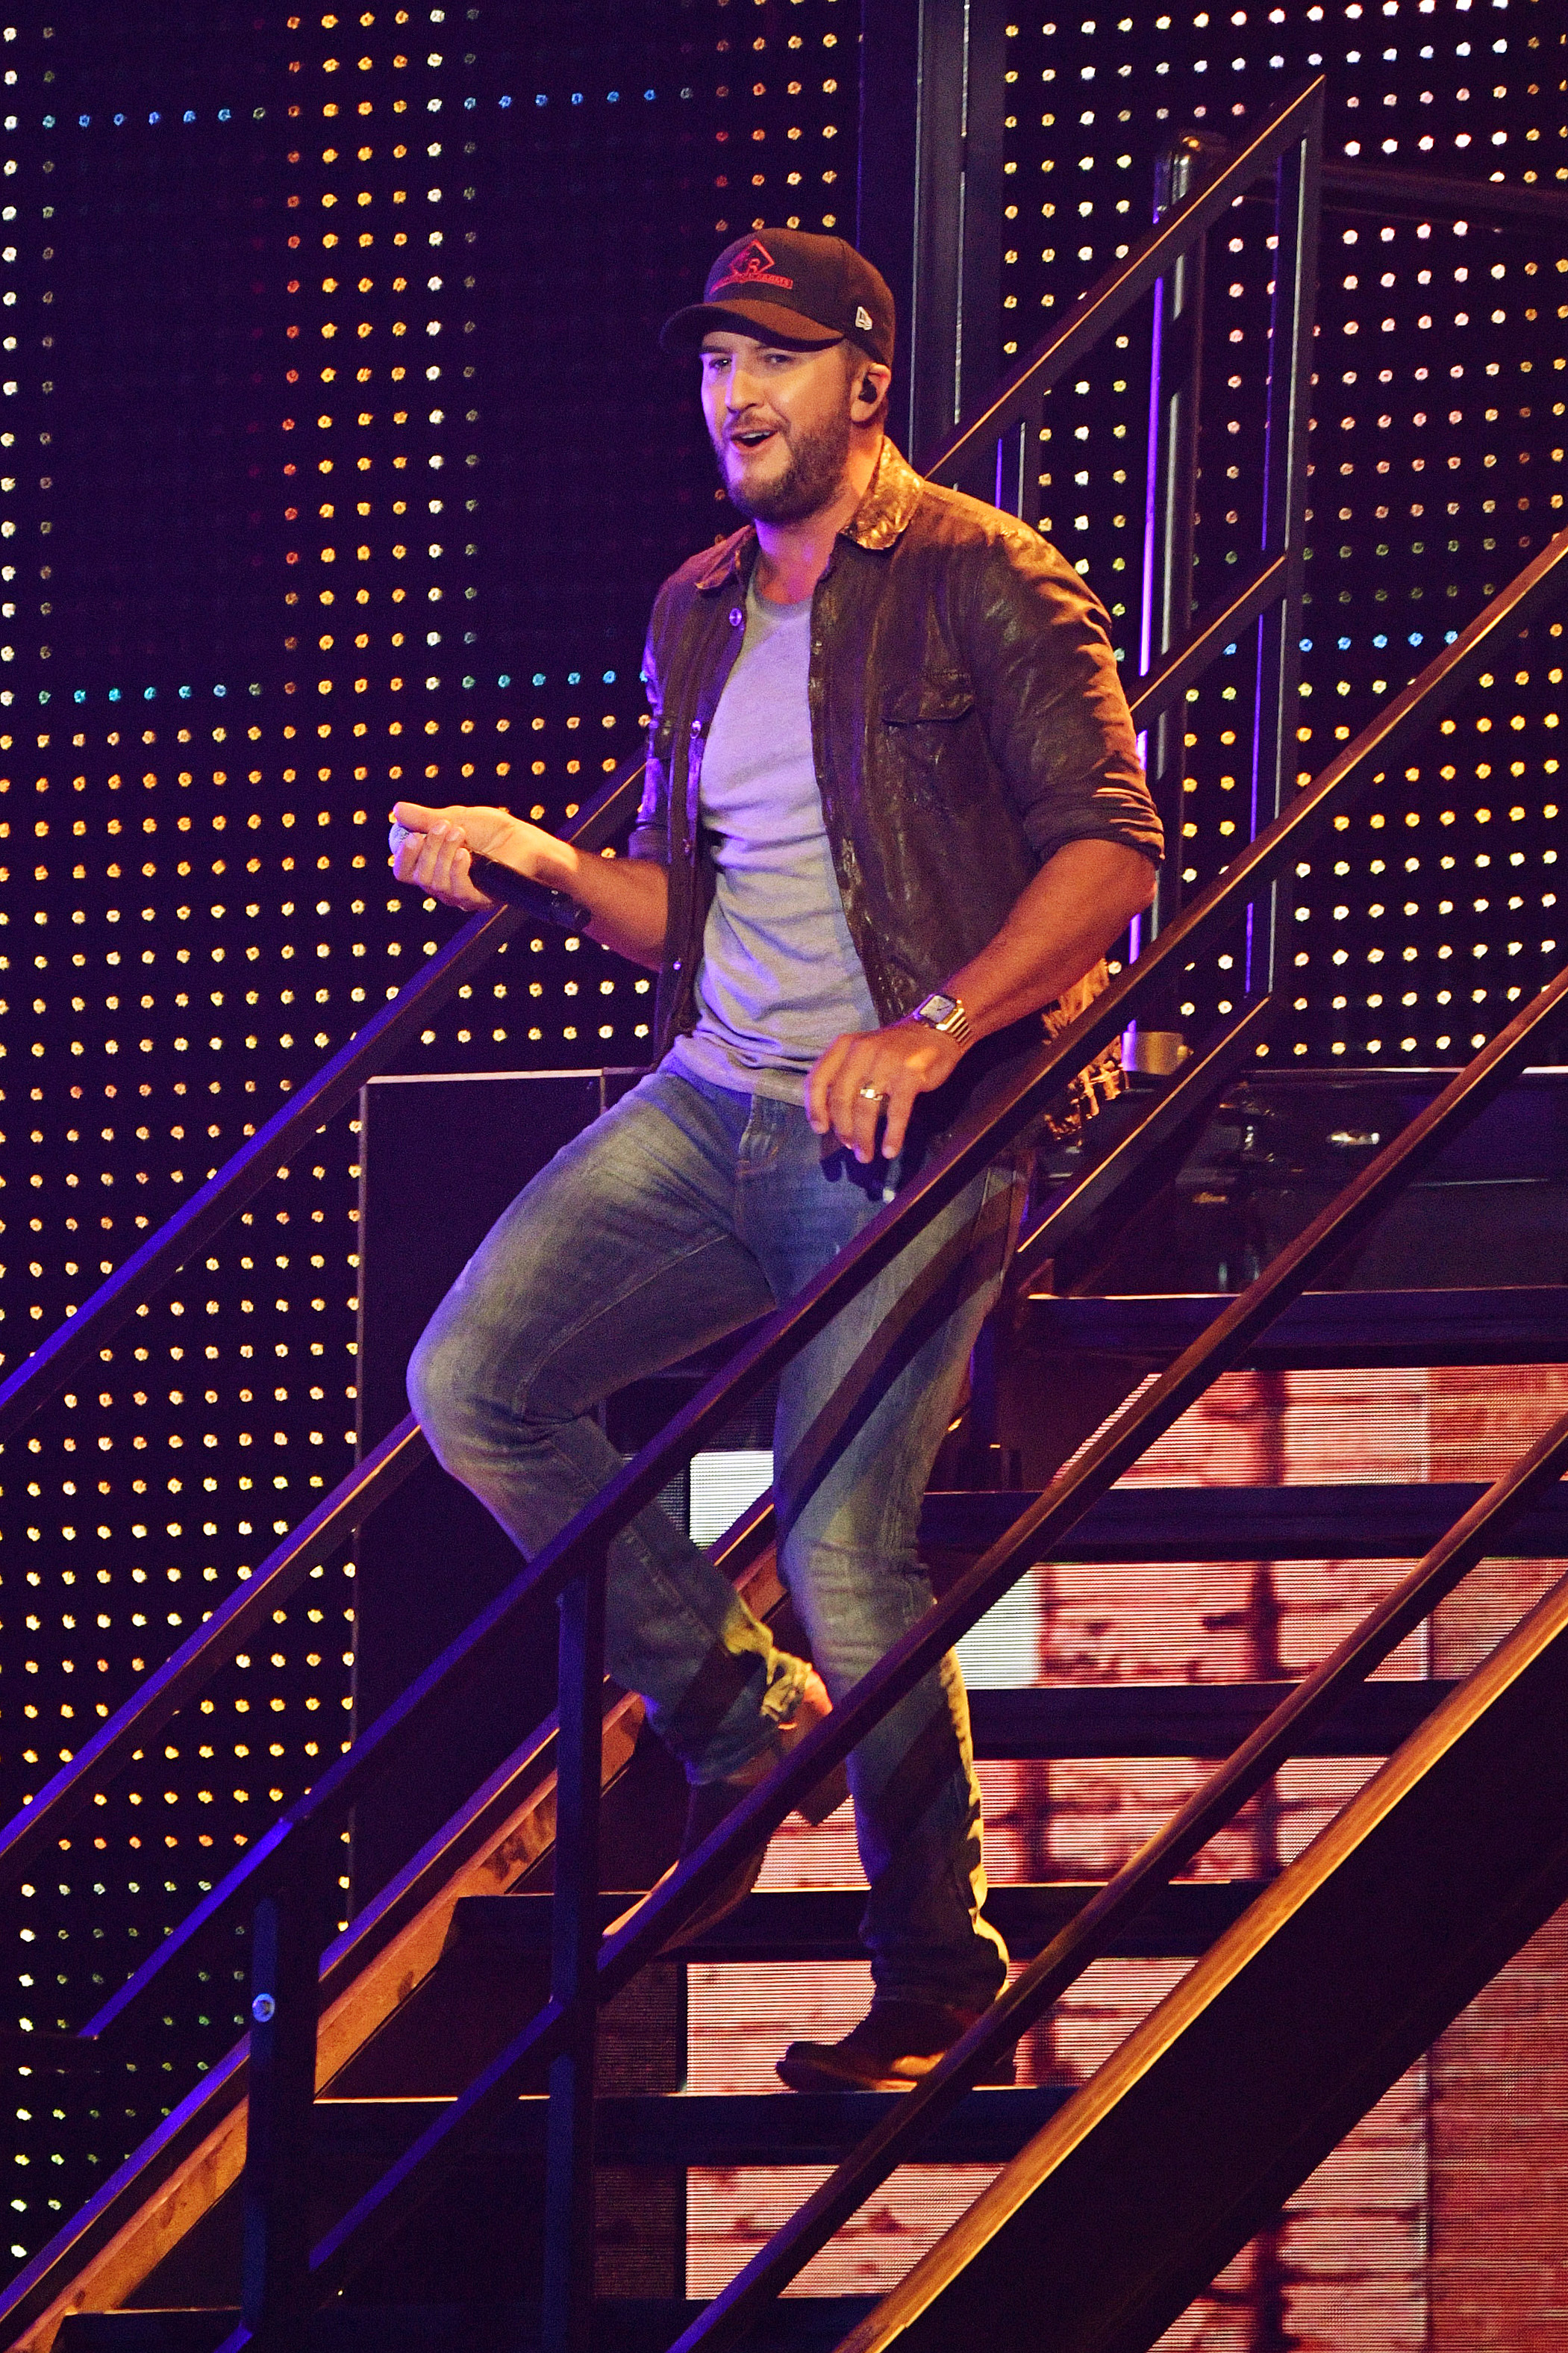 Luke Bryan performs at the 2019 CMT Music Awards at Bridgestone Arena in Nashville, Tennessee, on June 5, 2019.